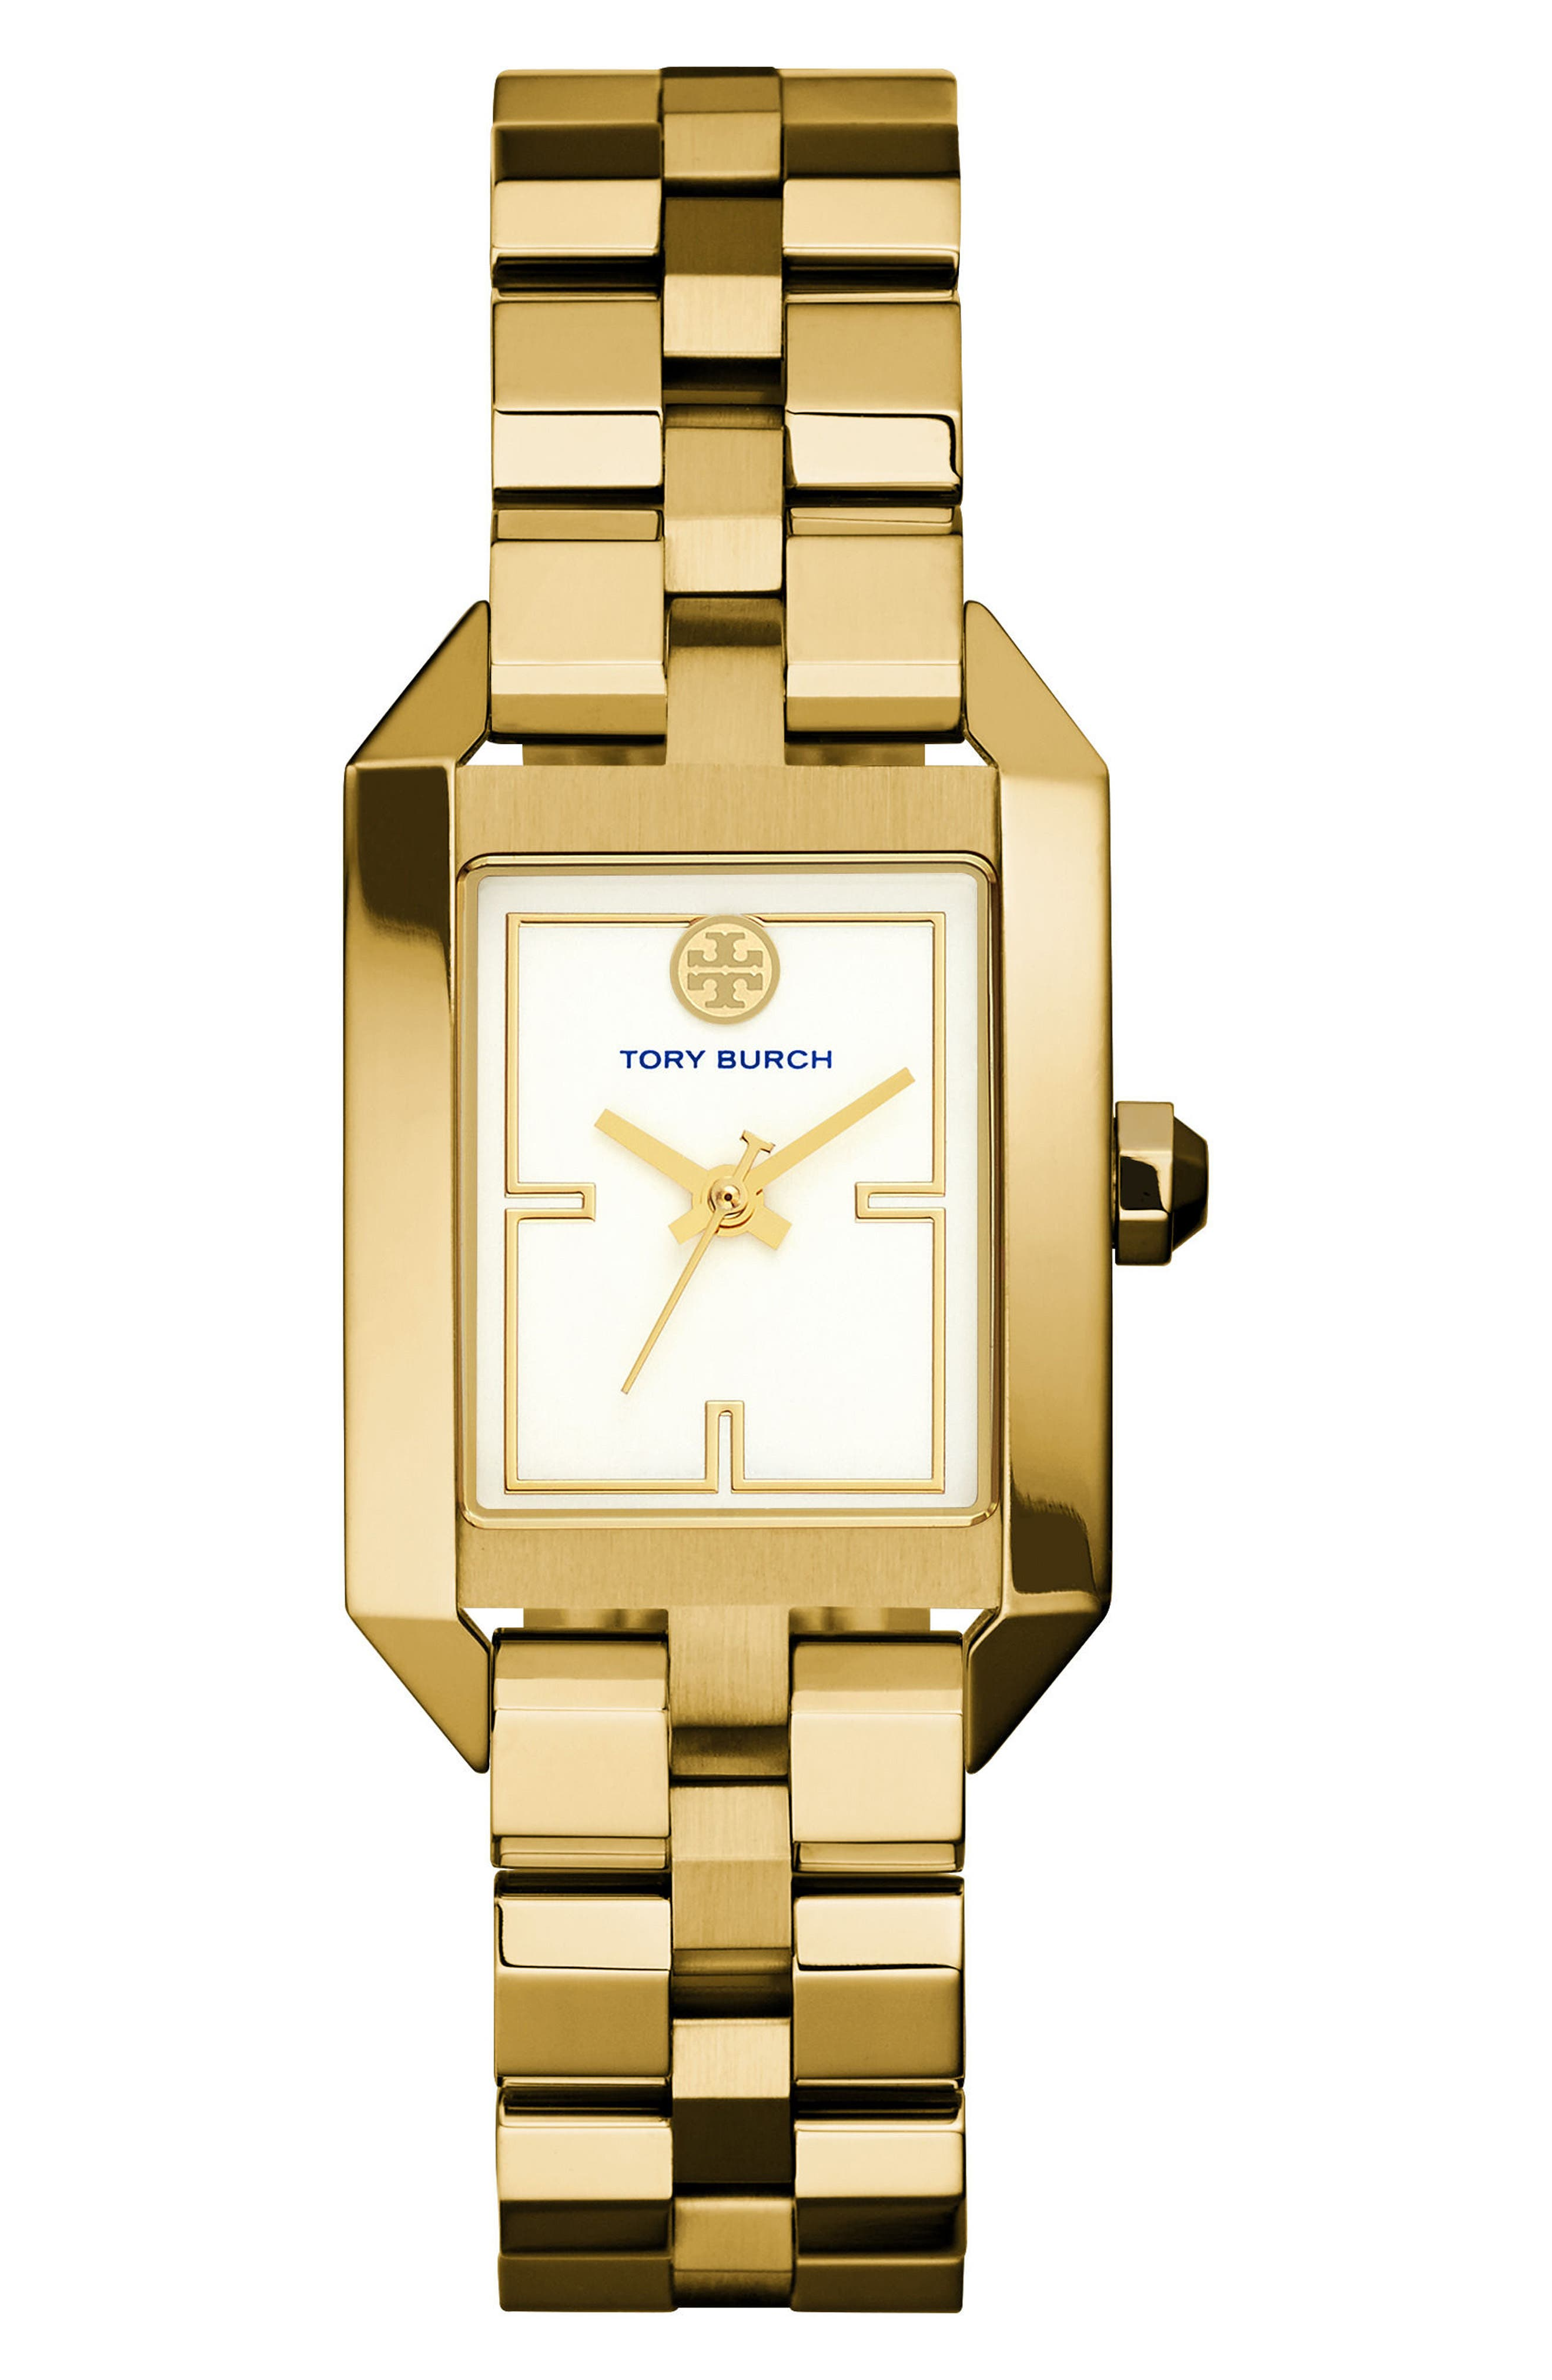 Alternate Image 1 Selected - Tory Burch Dalloway Bracelet Watch, 23mm x 36.5mm